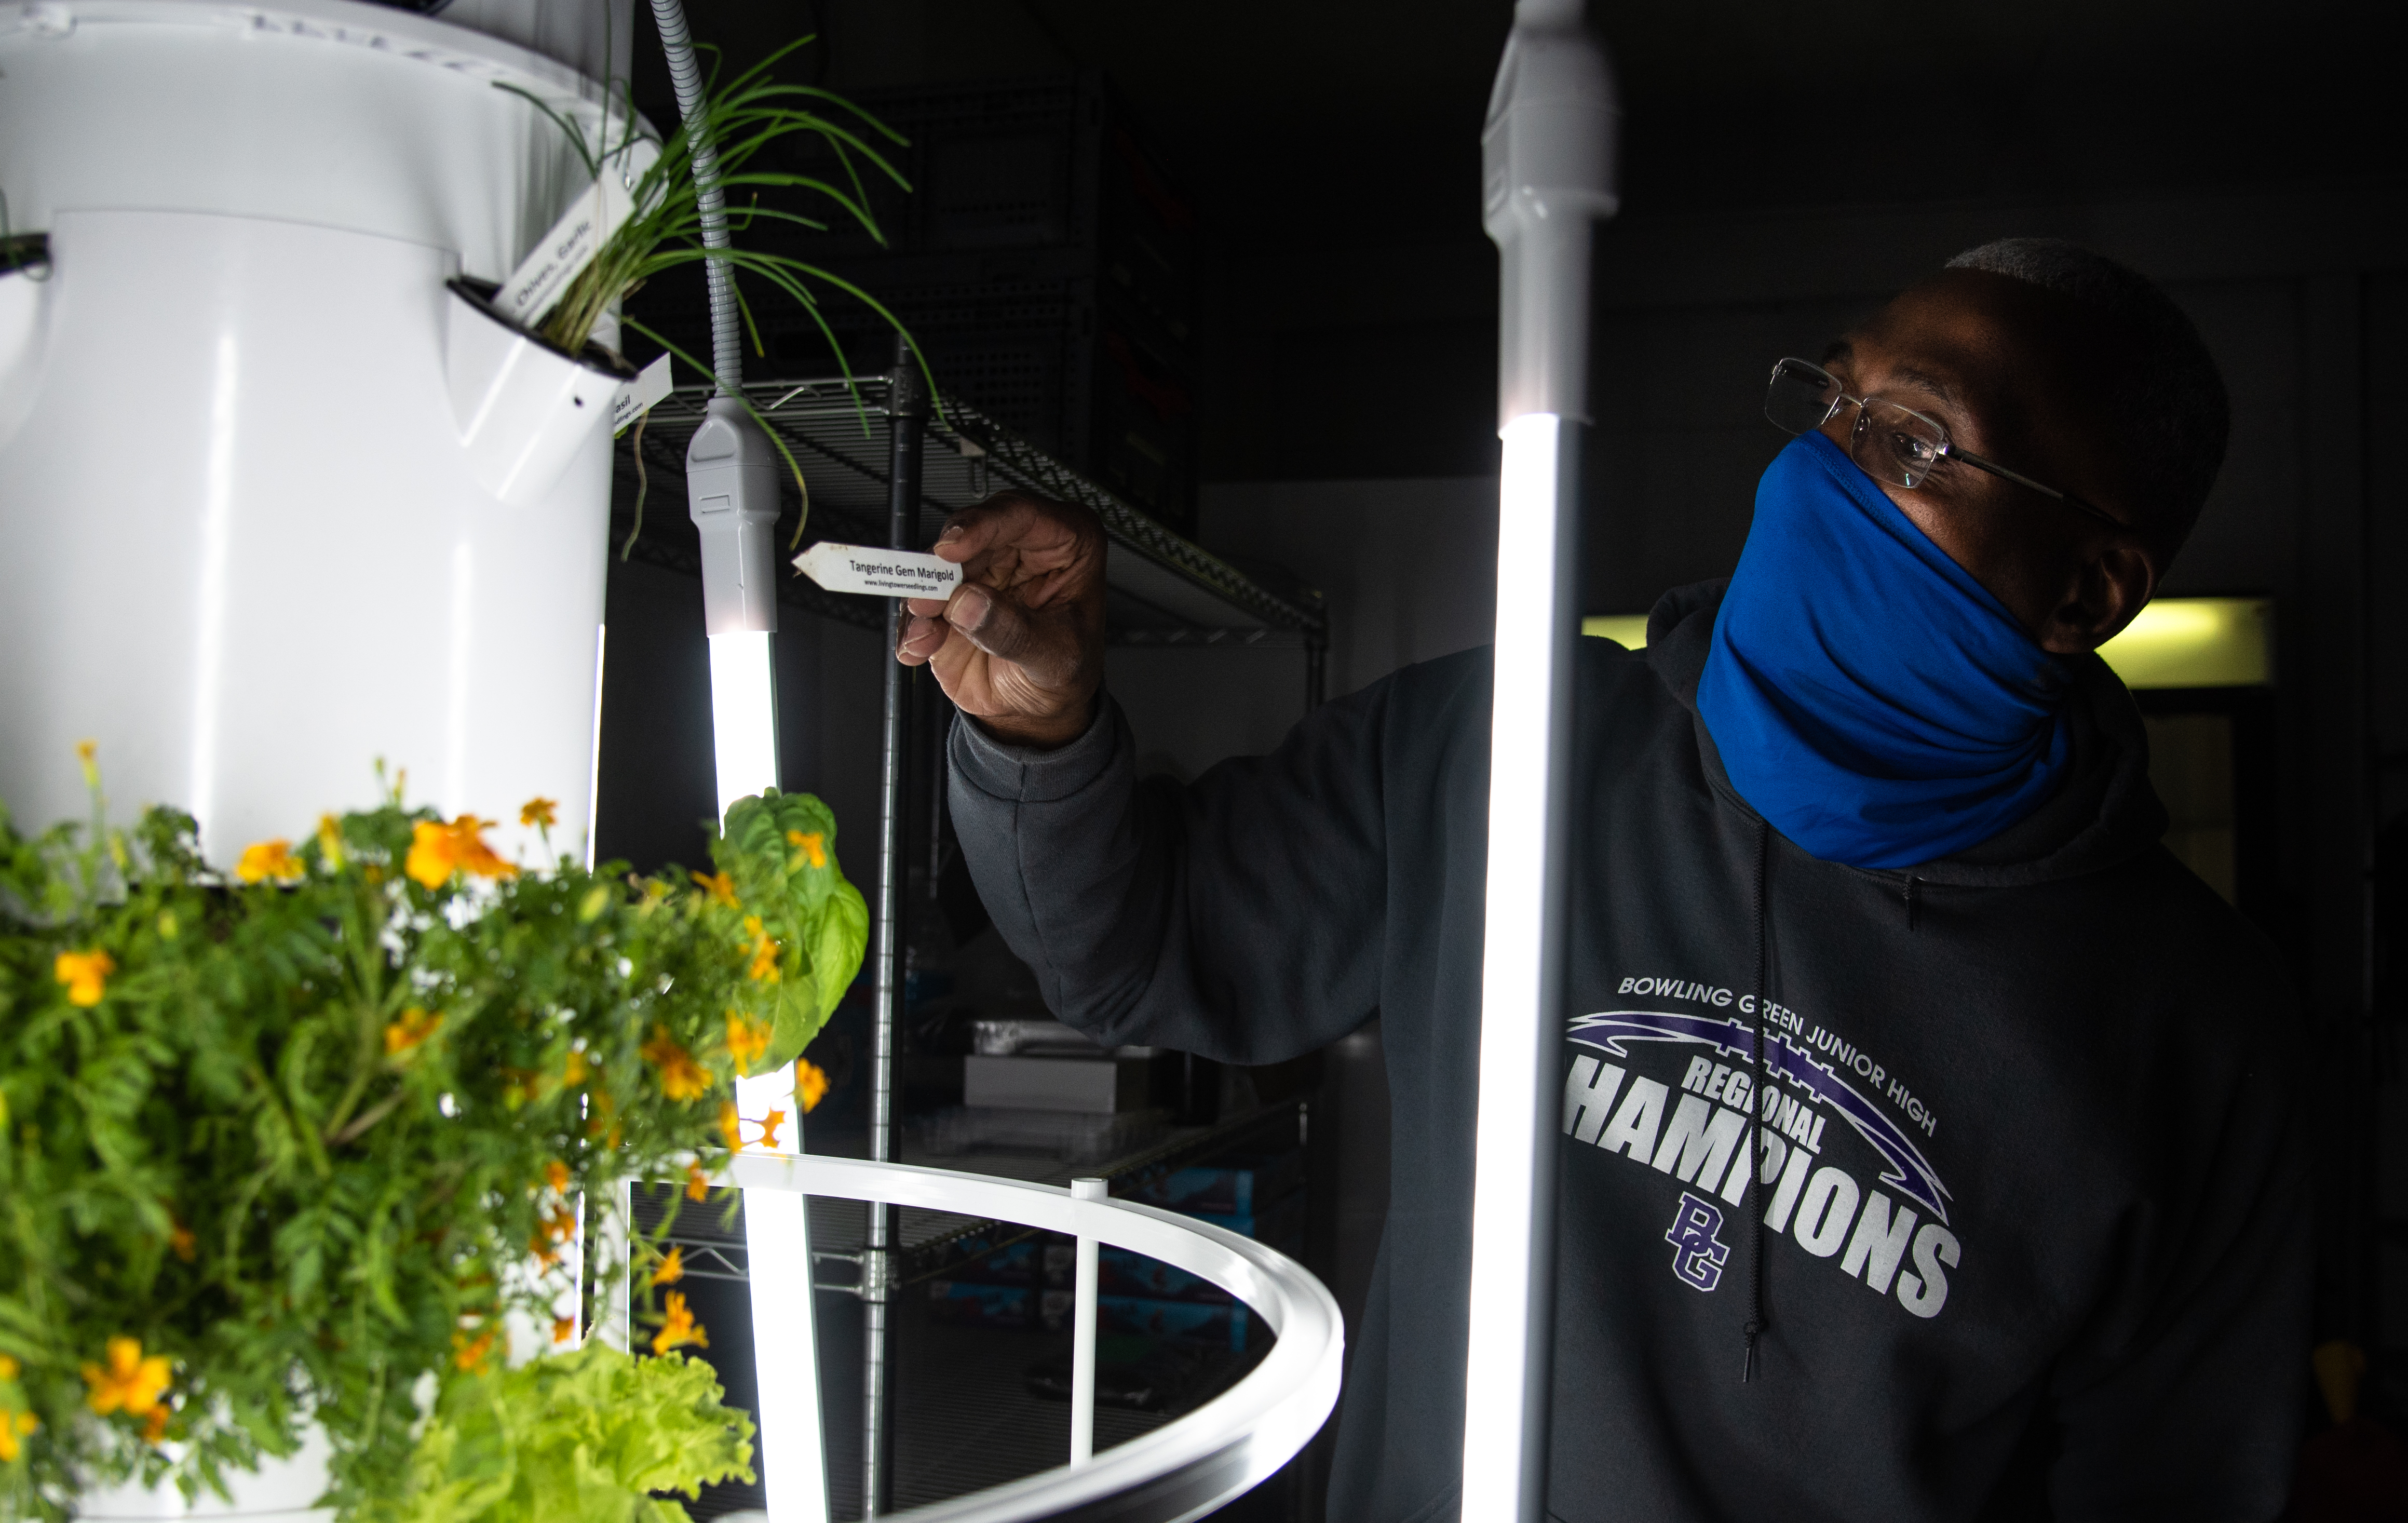 Danny Carothers checks on herbs growing in the stand-up hydroponic garden that was donated to the Housing Authority in Bowling Green to supplement the groceries available on the Mobile Grocery Bus.